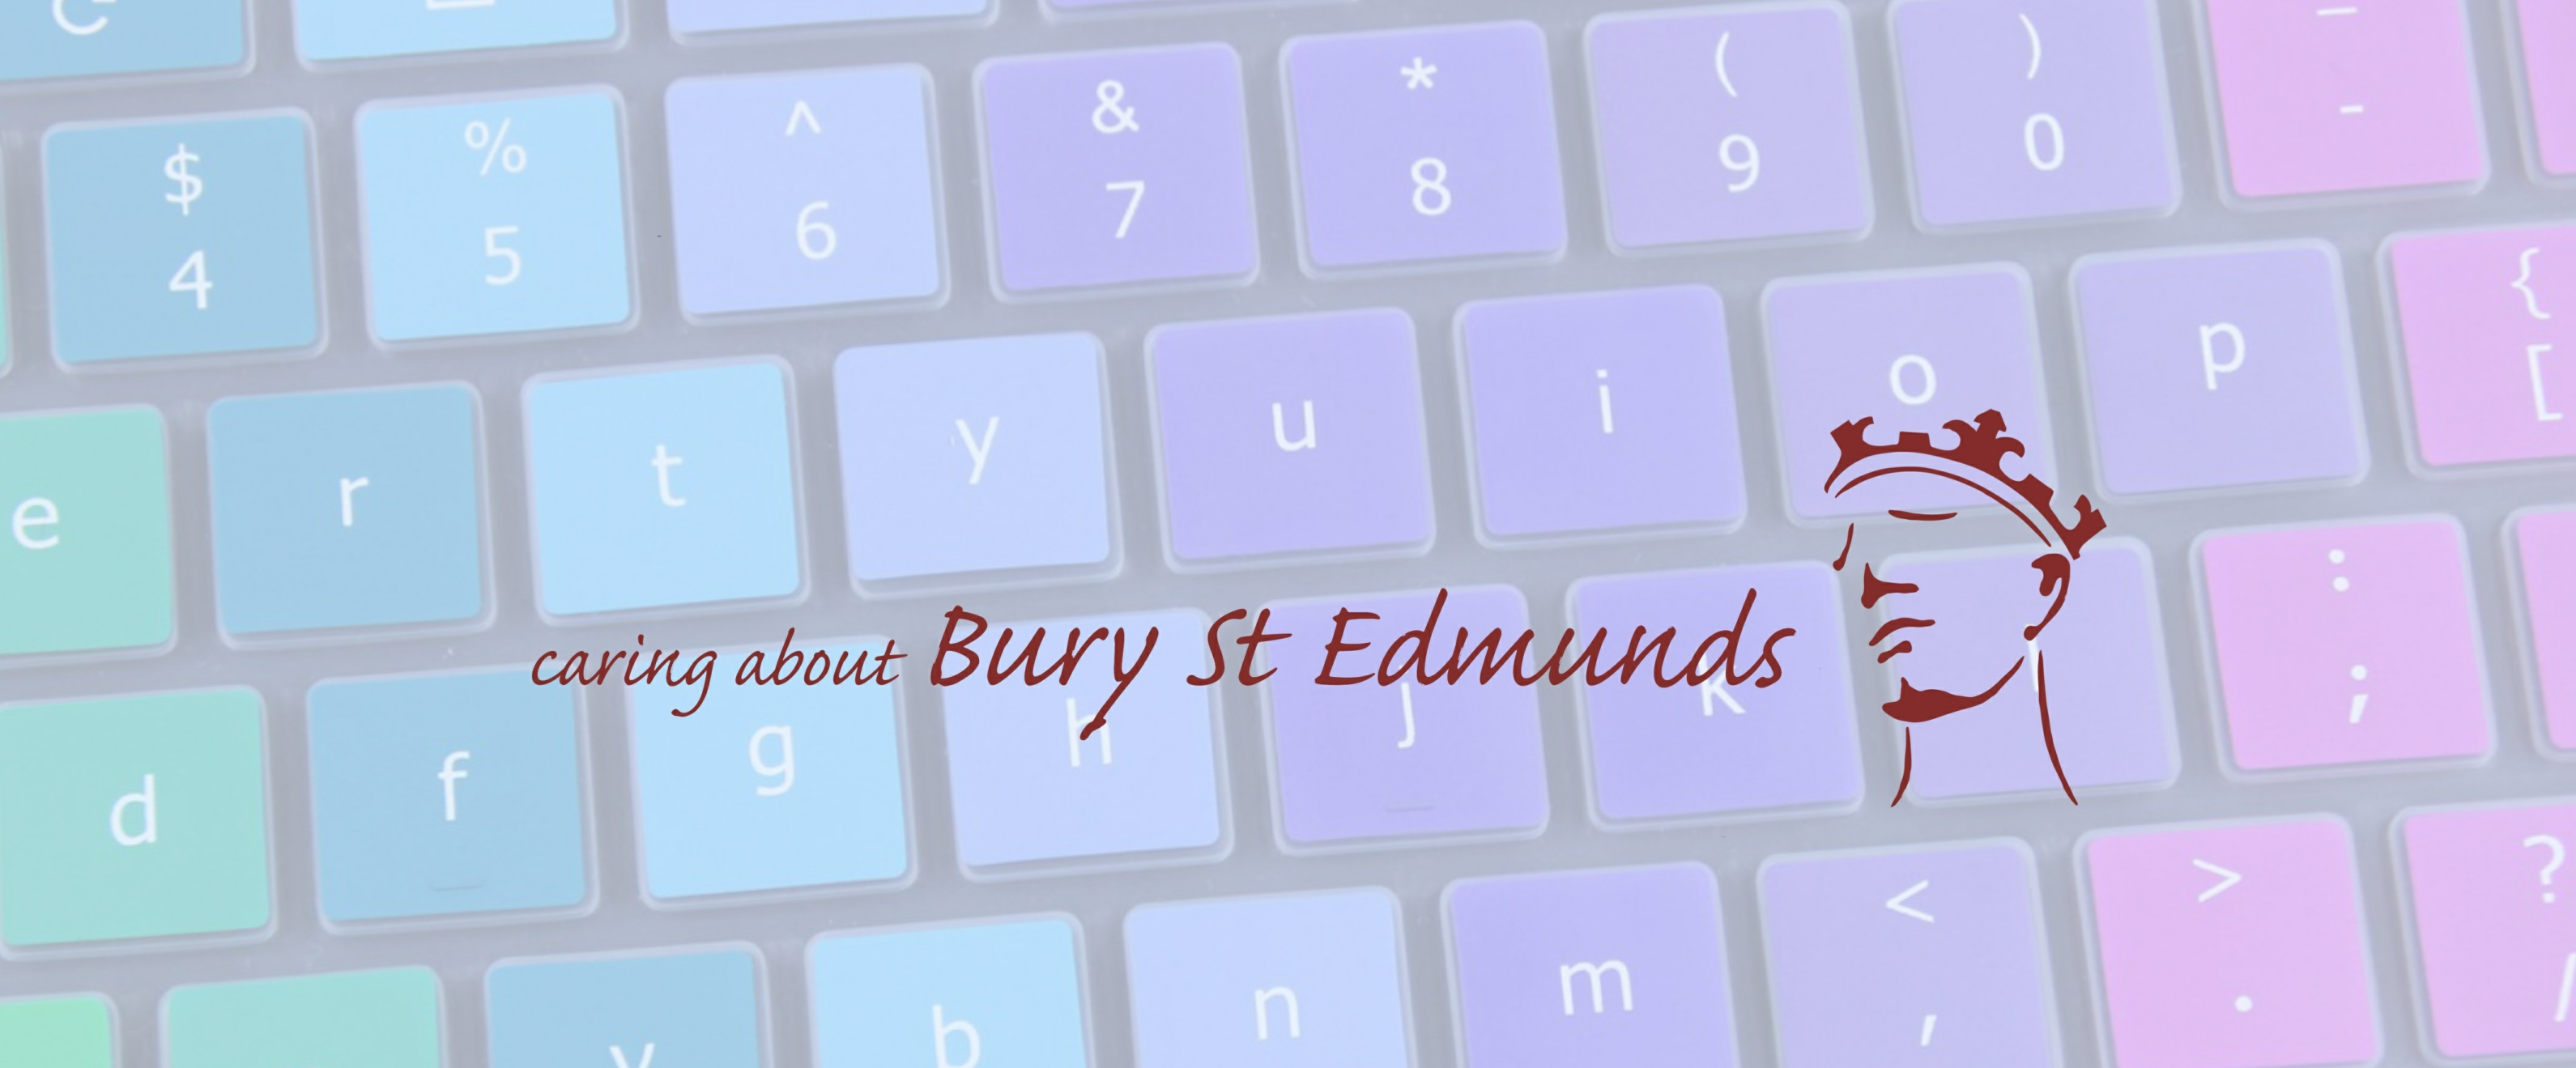 Bury St Edmunds Then and Now on Zoom